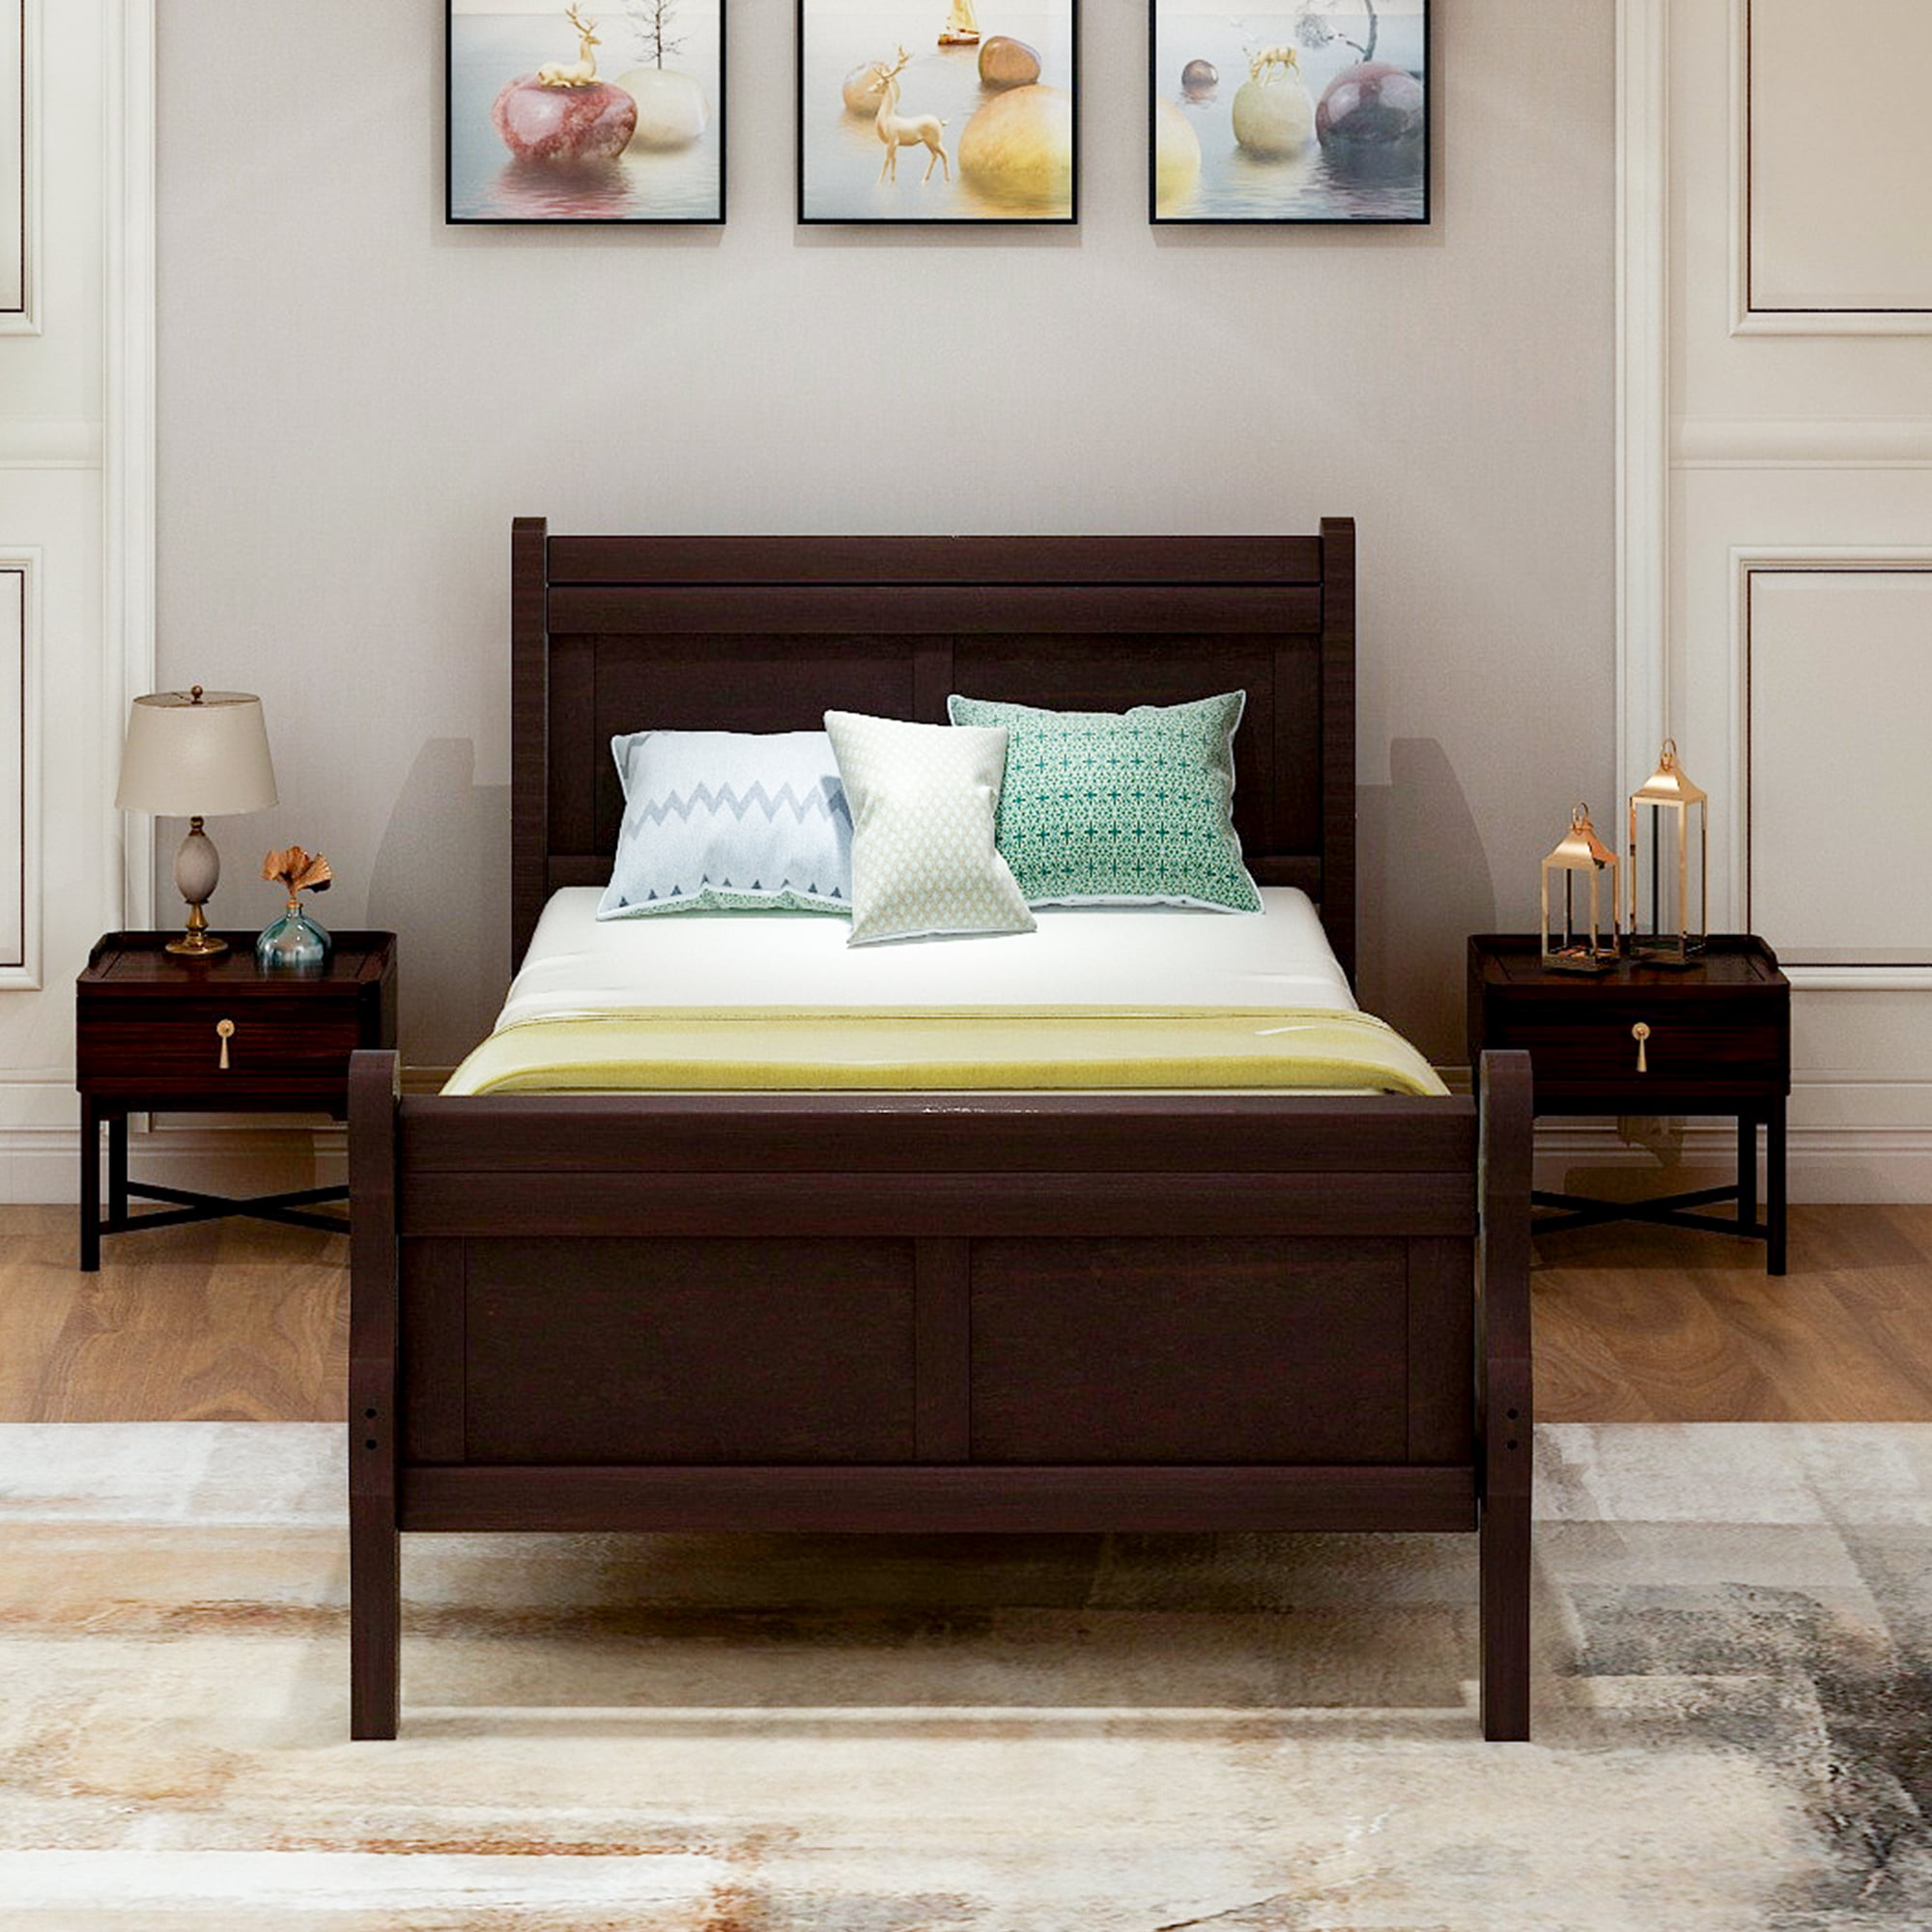 Clearance!Espresso Twin Bed Frame, Wood Twin Platform Bed ...